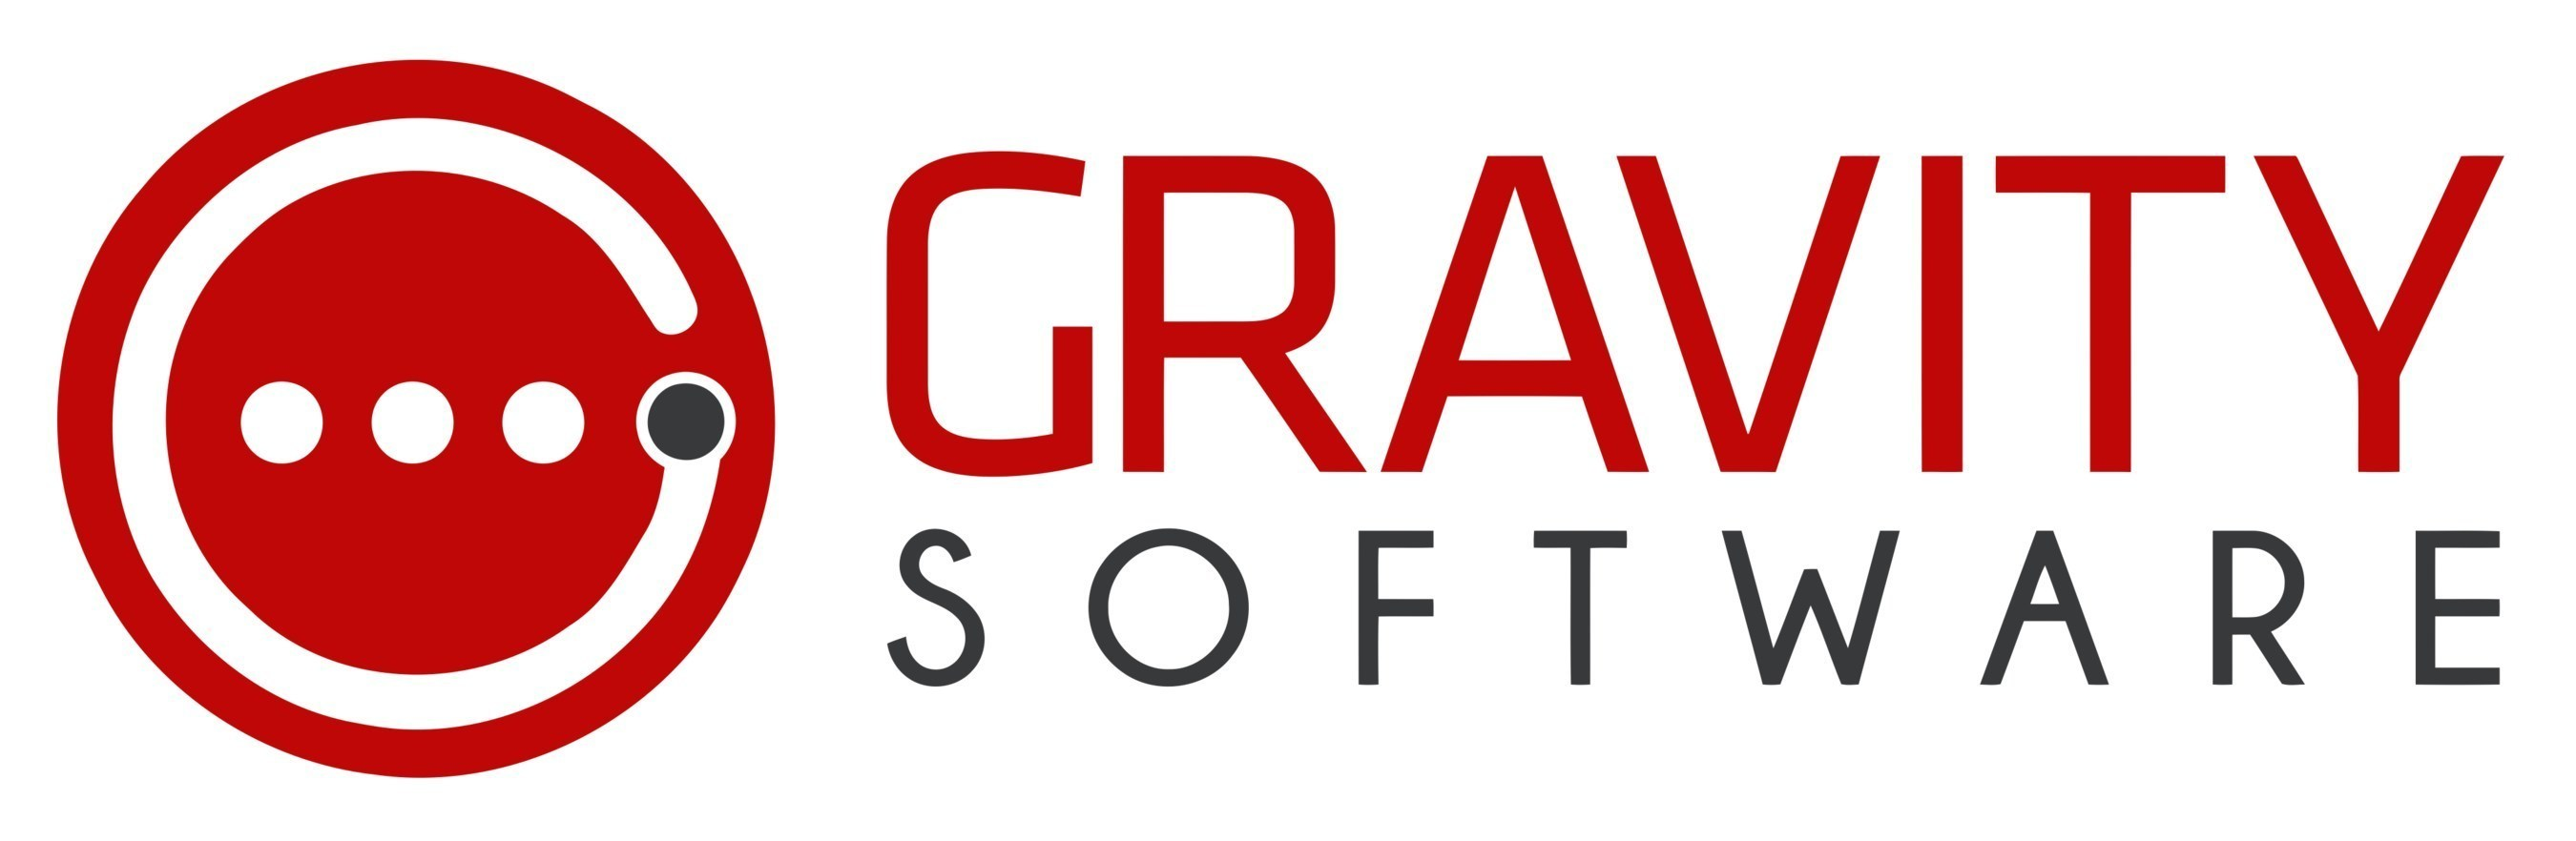 Top Respected Reseller Introduces a Cloud Financial Online Business Solution - Gravity Software''